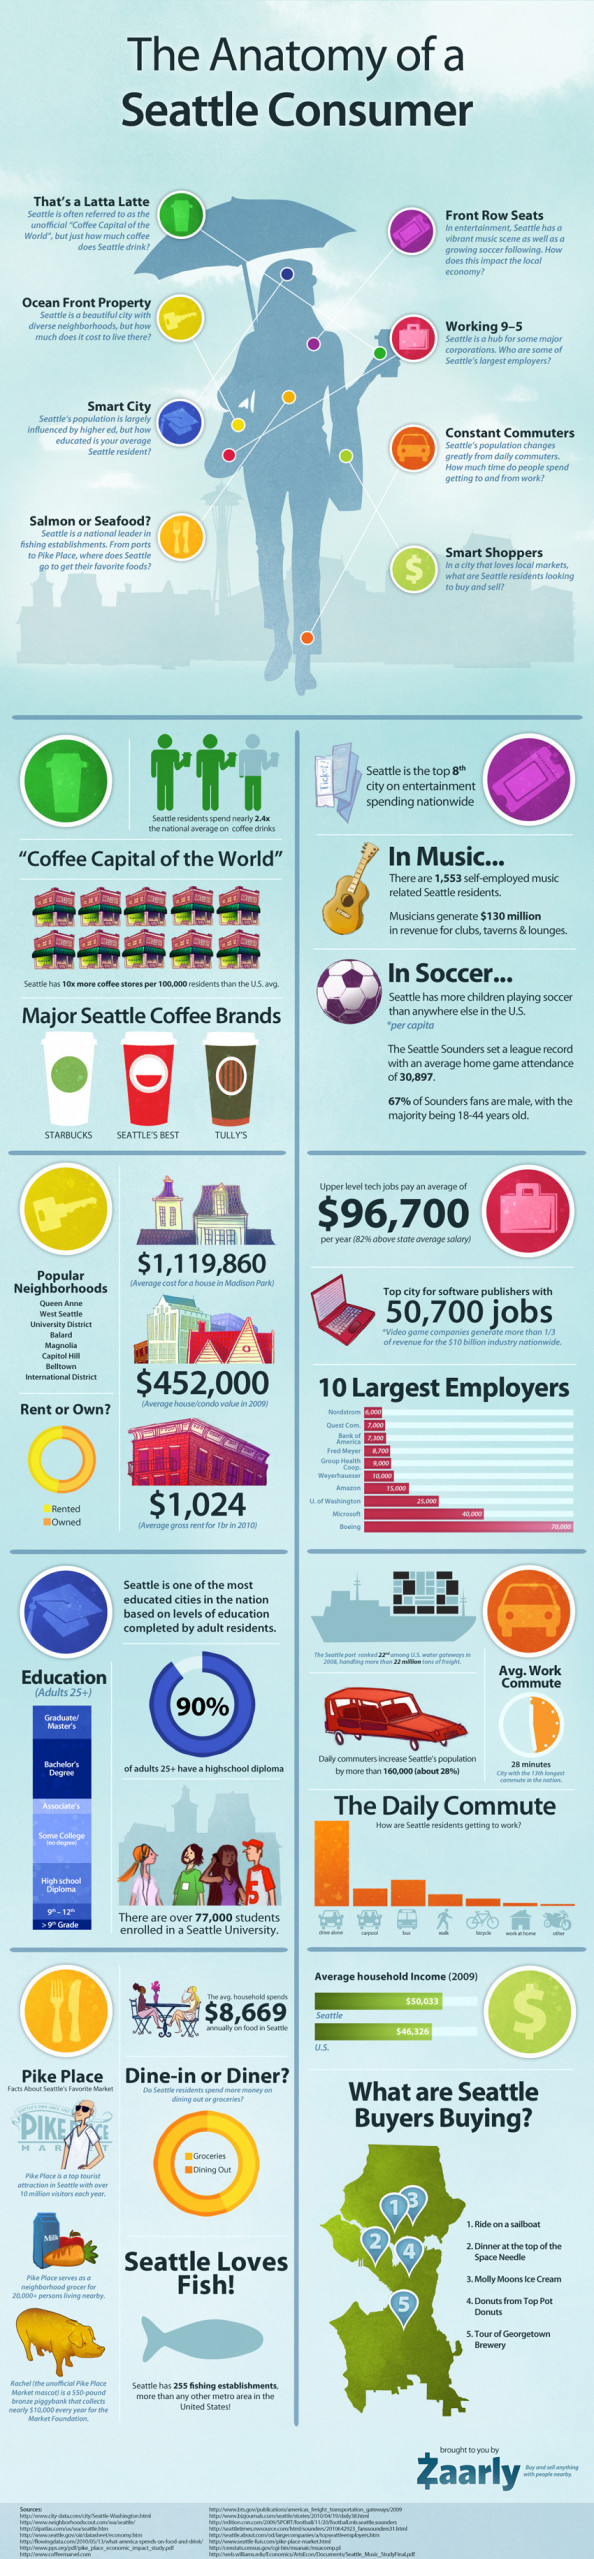 The Anatomy of a Seattle Consumer Infographic